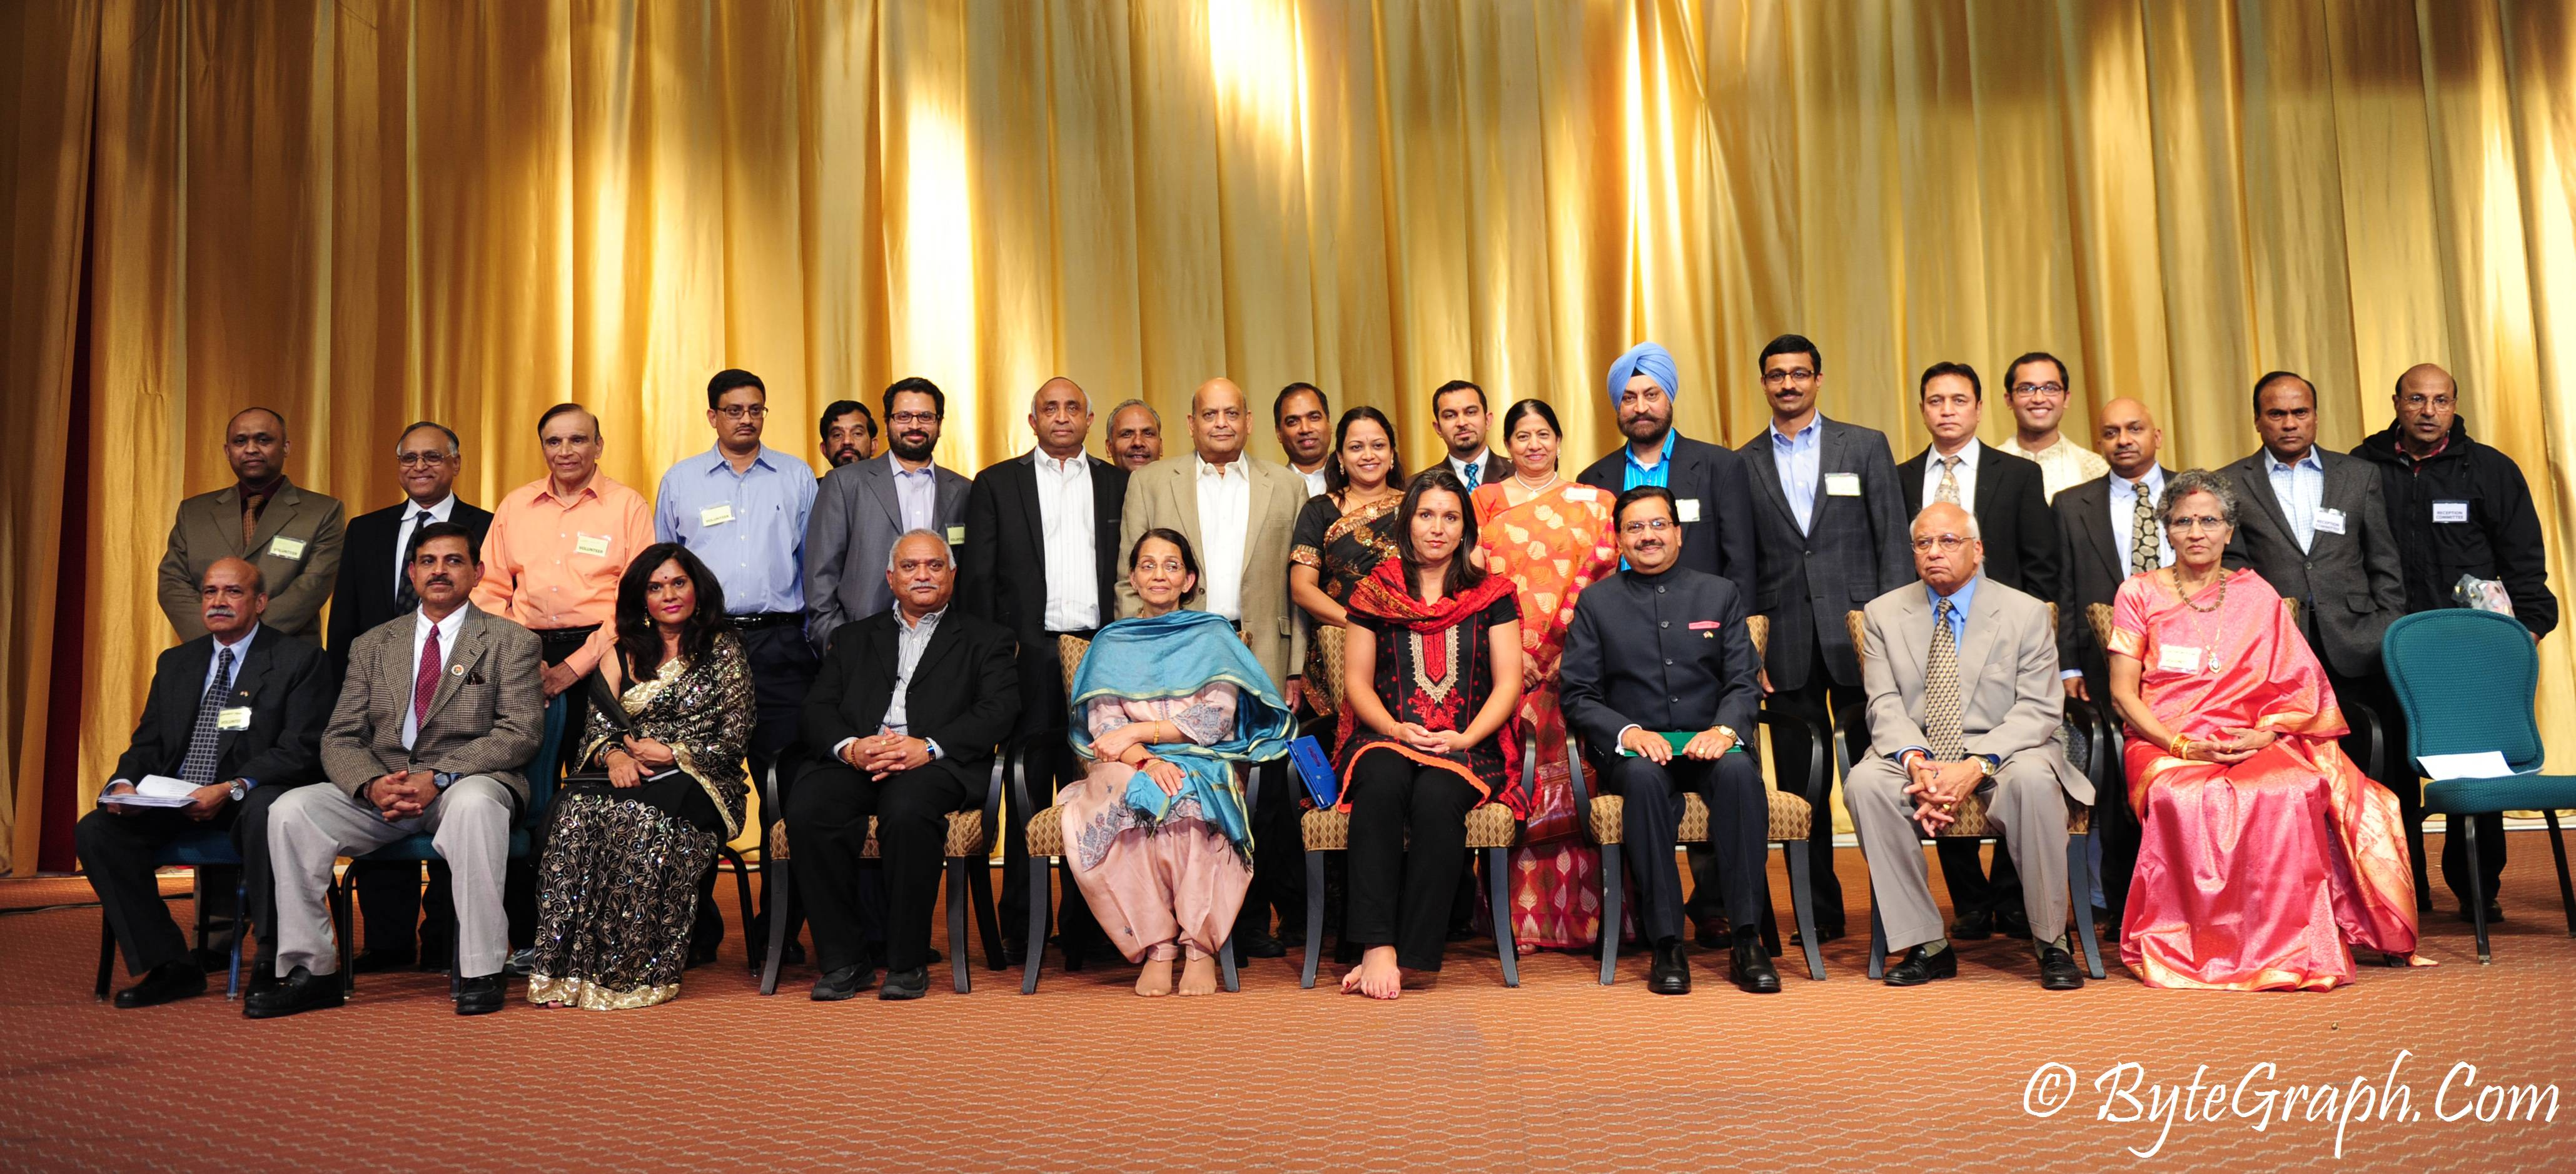 USHA Event - Community Leaders with Hon. Tulsi Gabbard and Consul General